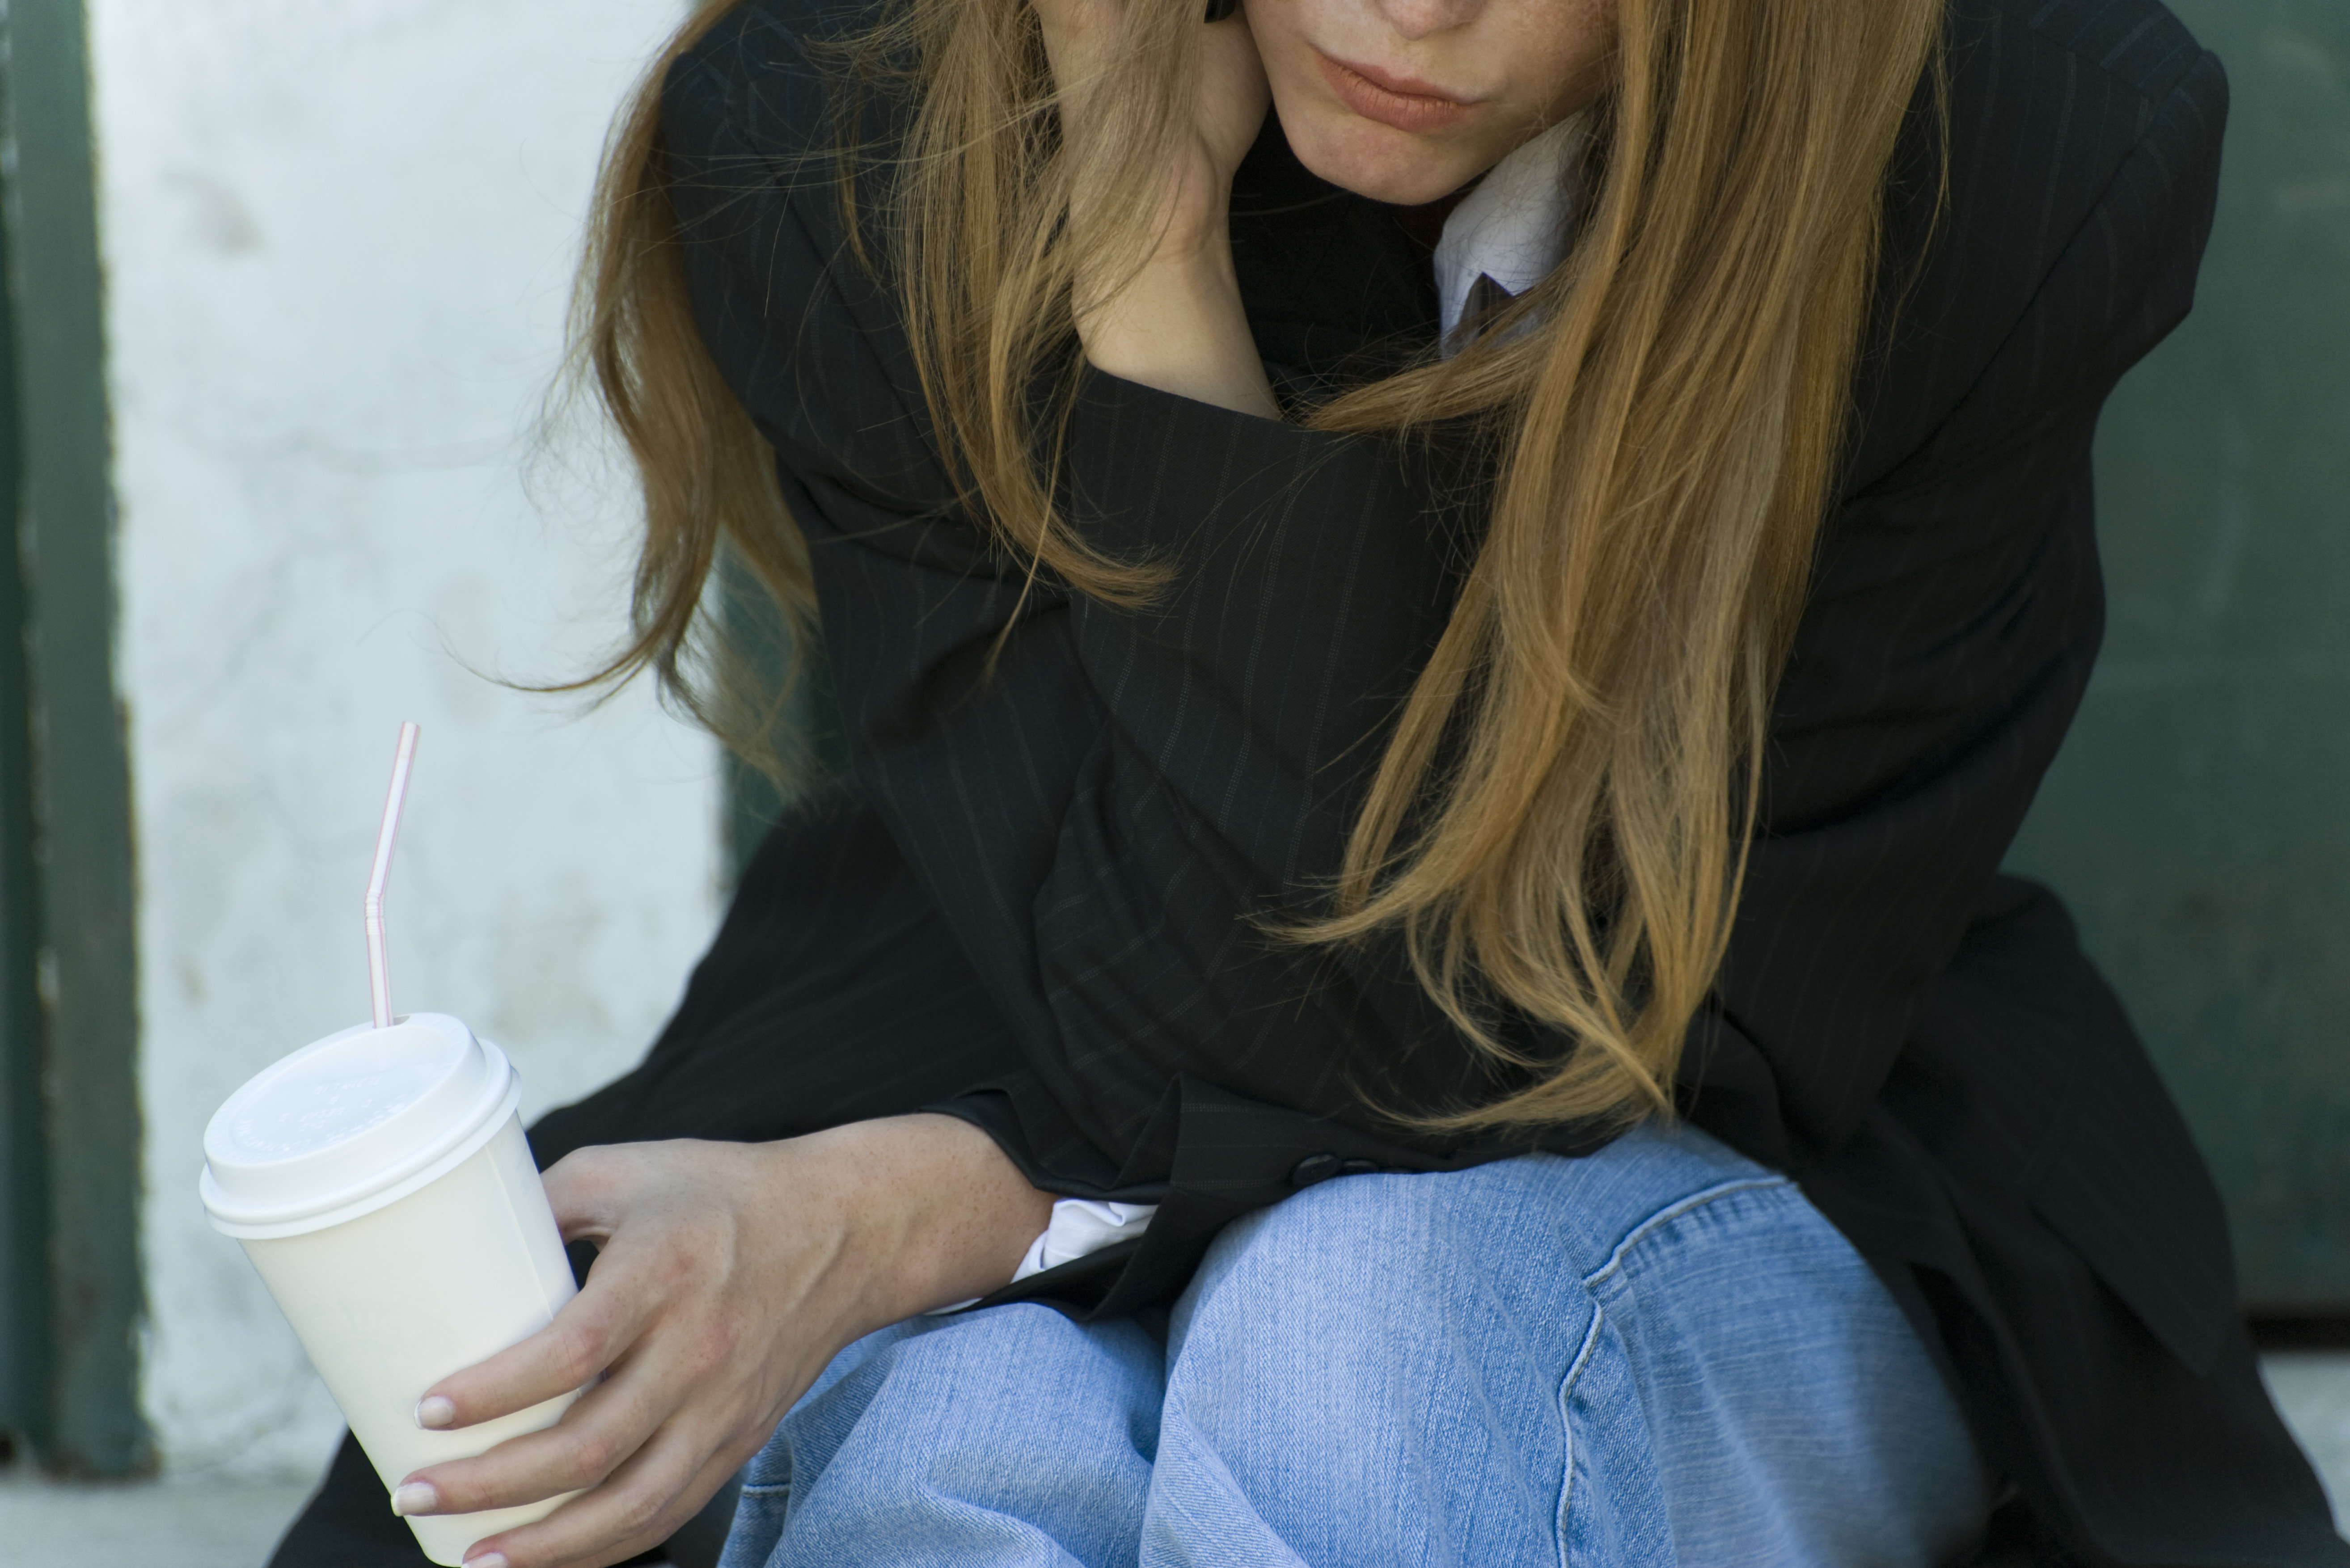 Young woman leaning on elbow, holding cup, cropped view